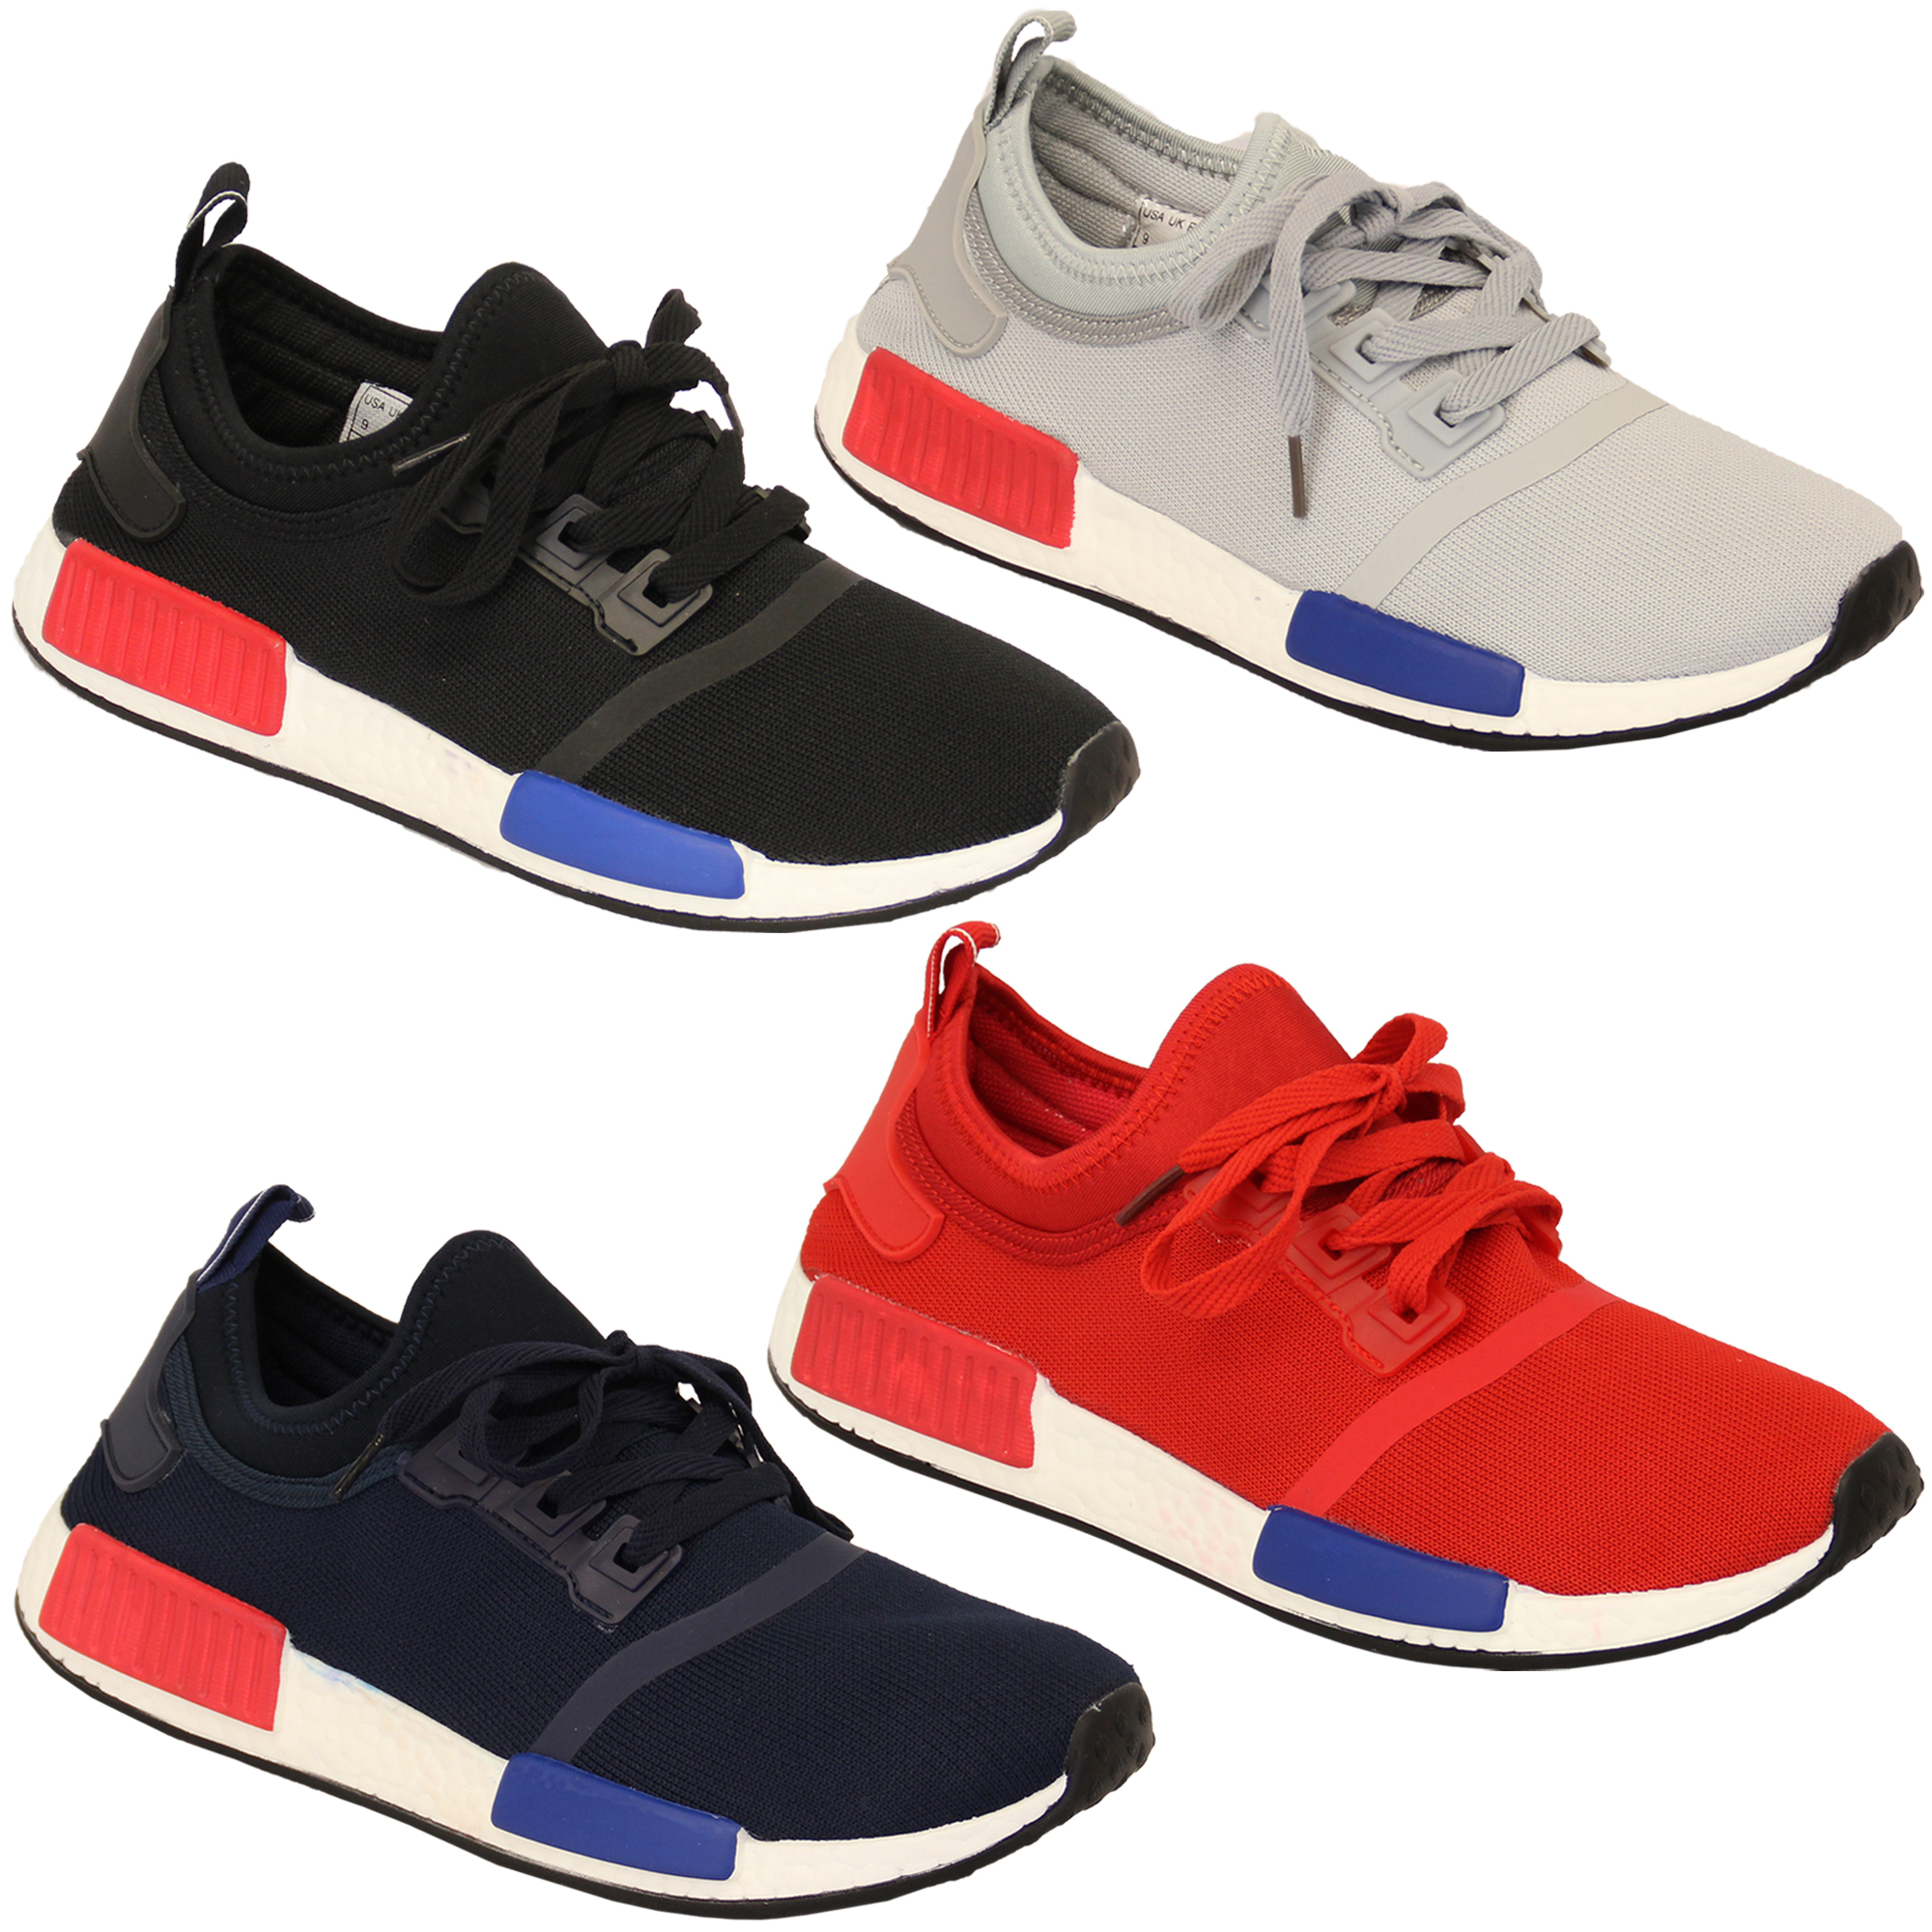 Mens-Lace-Up-Gym-Running-Trainers-Mesh-Shoes thumbnail 4